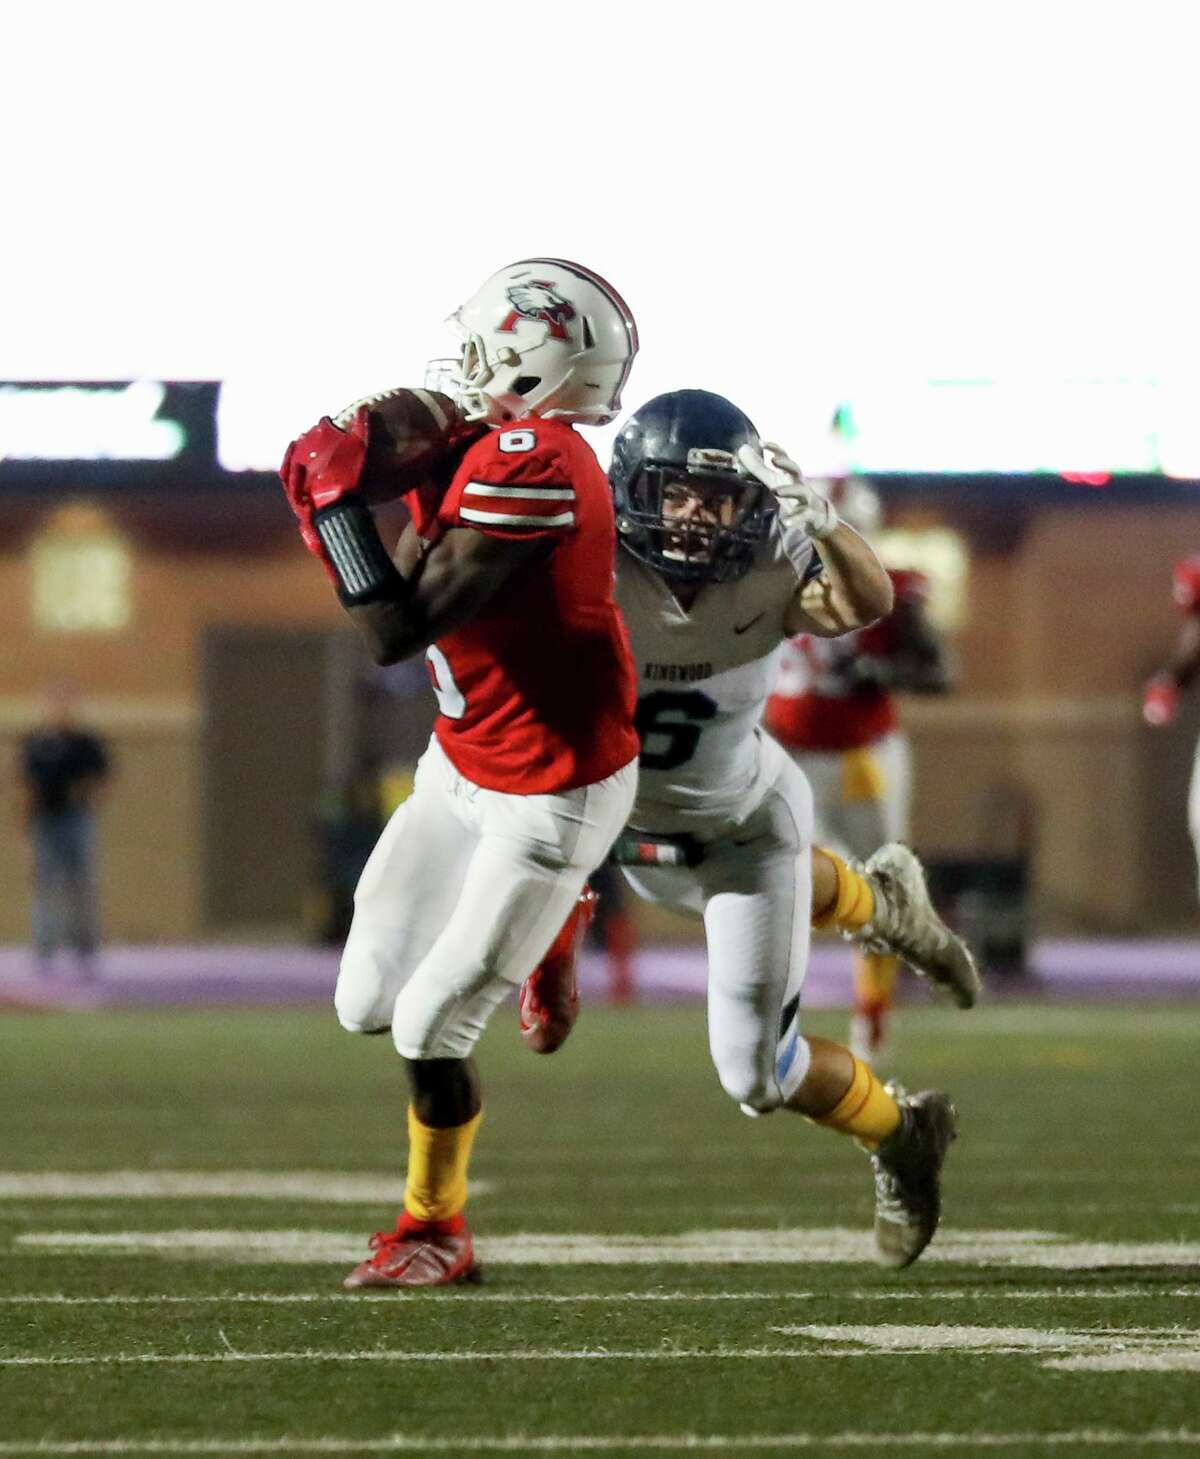 Atascocita Eagles A.J. Bobb (6) makes a catch during a conference football game between the Kingwood Mustangs and the Atascocita Eagles on Friday, September 13, 2019 at Turner Stadium, Humble, TX.